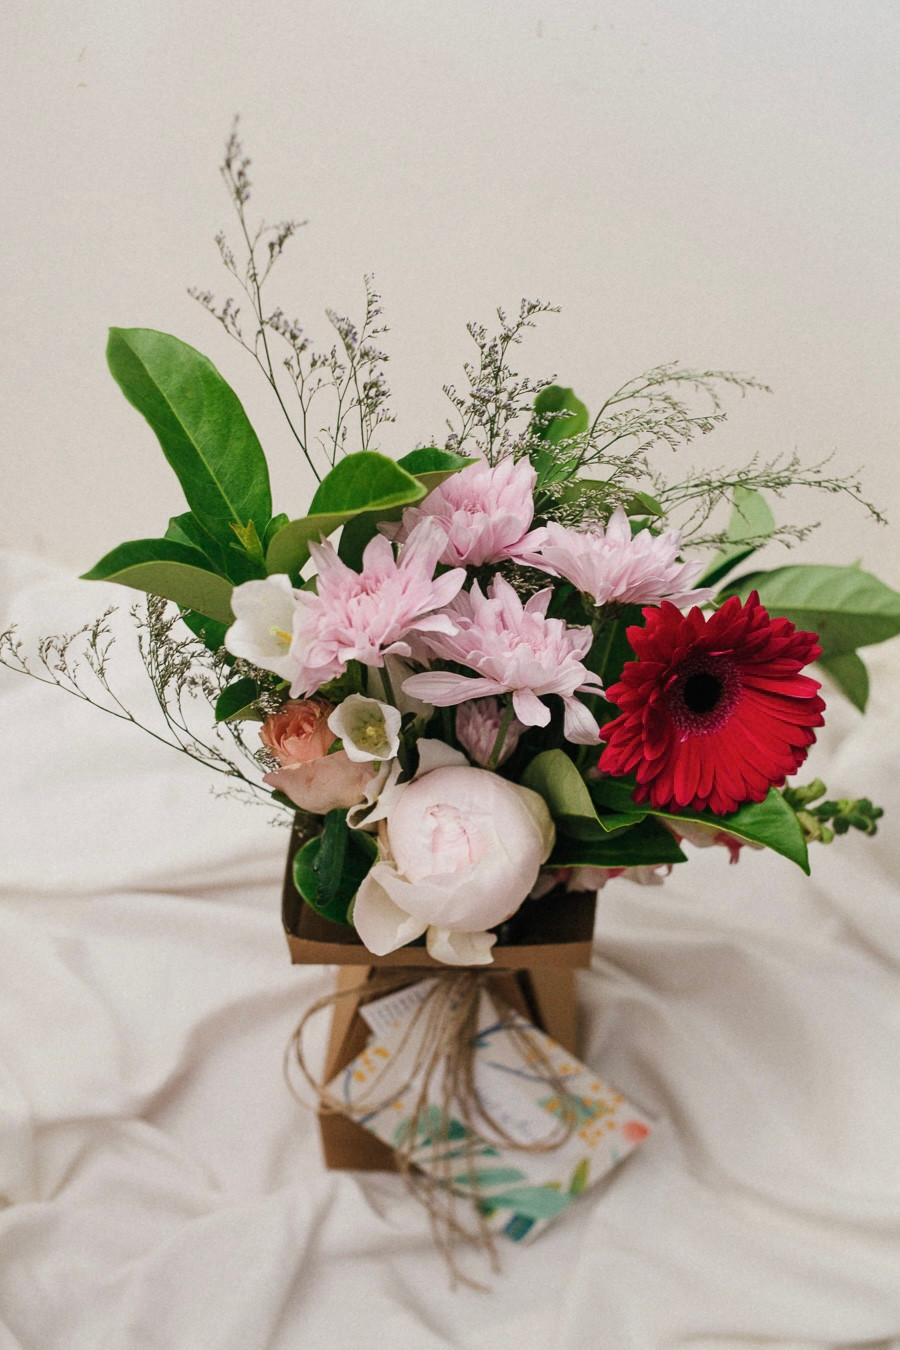 Petite Posy featuring Peony, Misty, Gerbera, Rose, Canterbury Bell, Viburnum and Snap Dragon